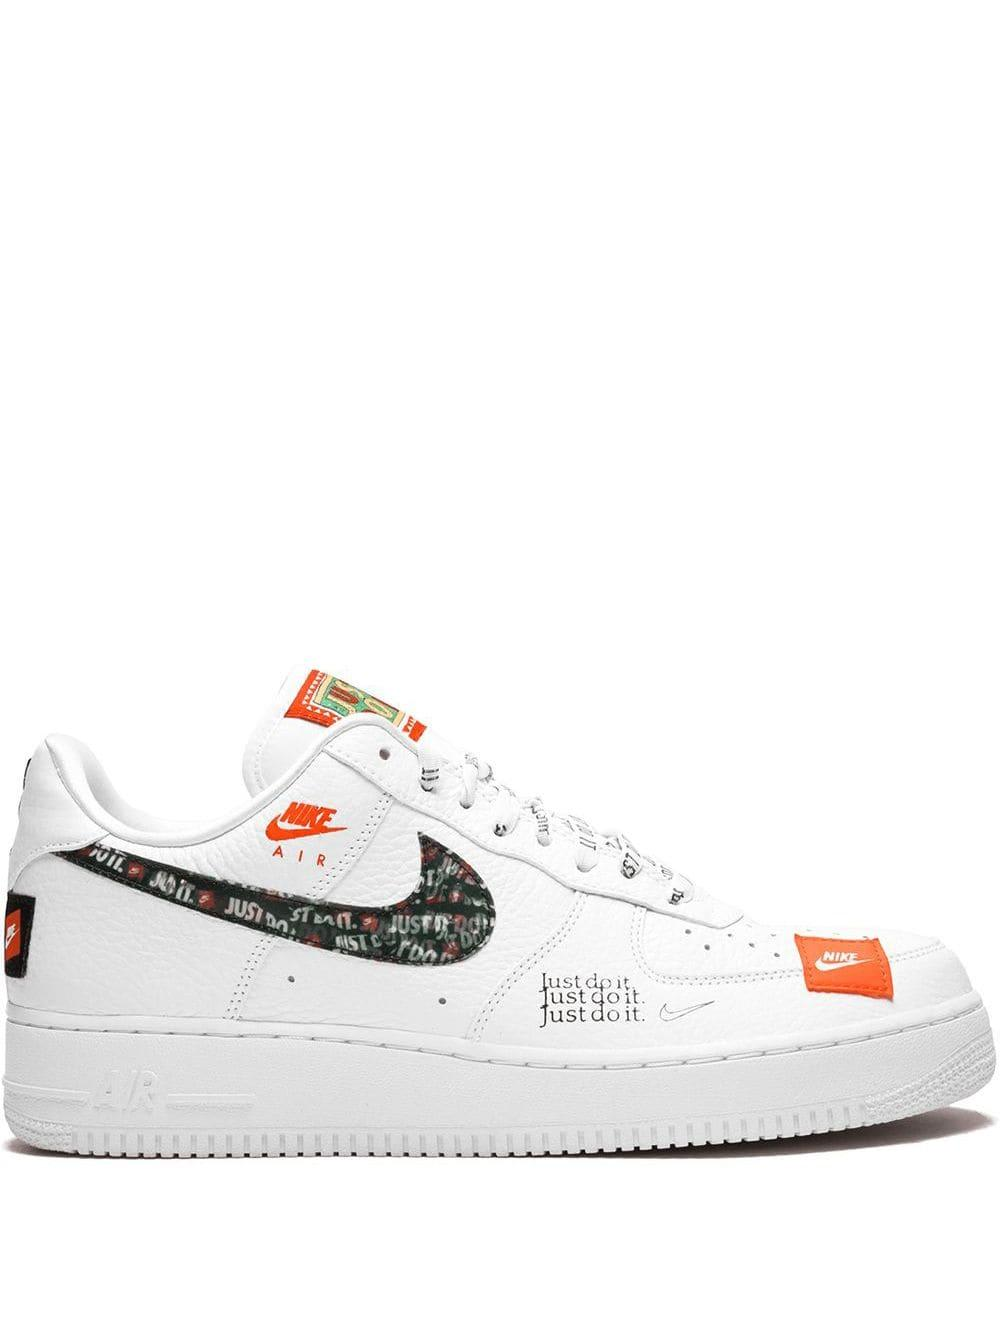 Nike Leather Air Force 1 '07 Prm Jdi Sneakers in White for Men - Lyst